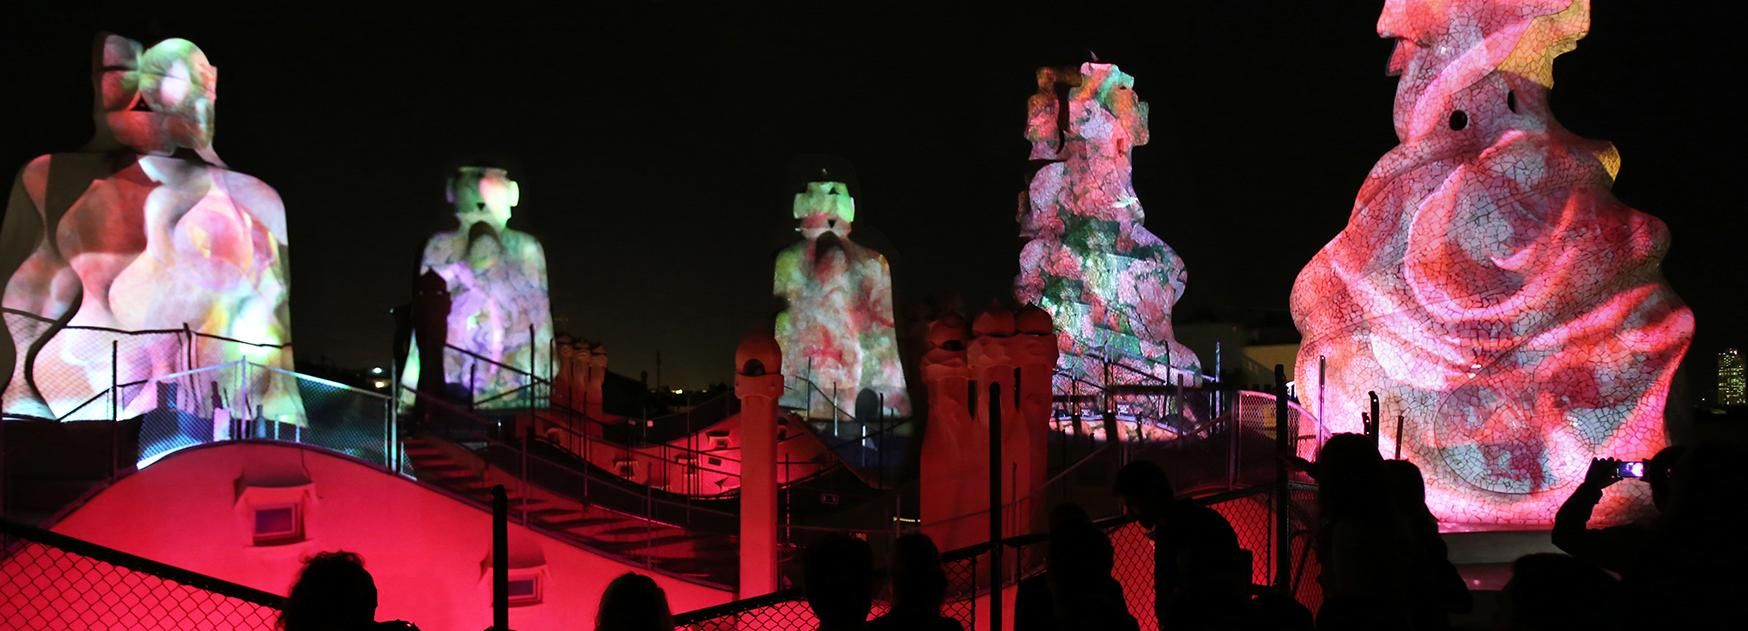 Barcelona: La Pedrera Night Experience